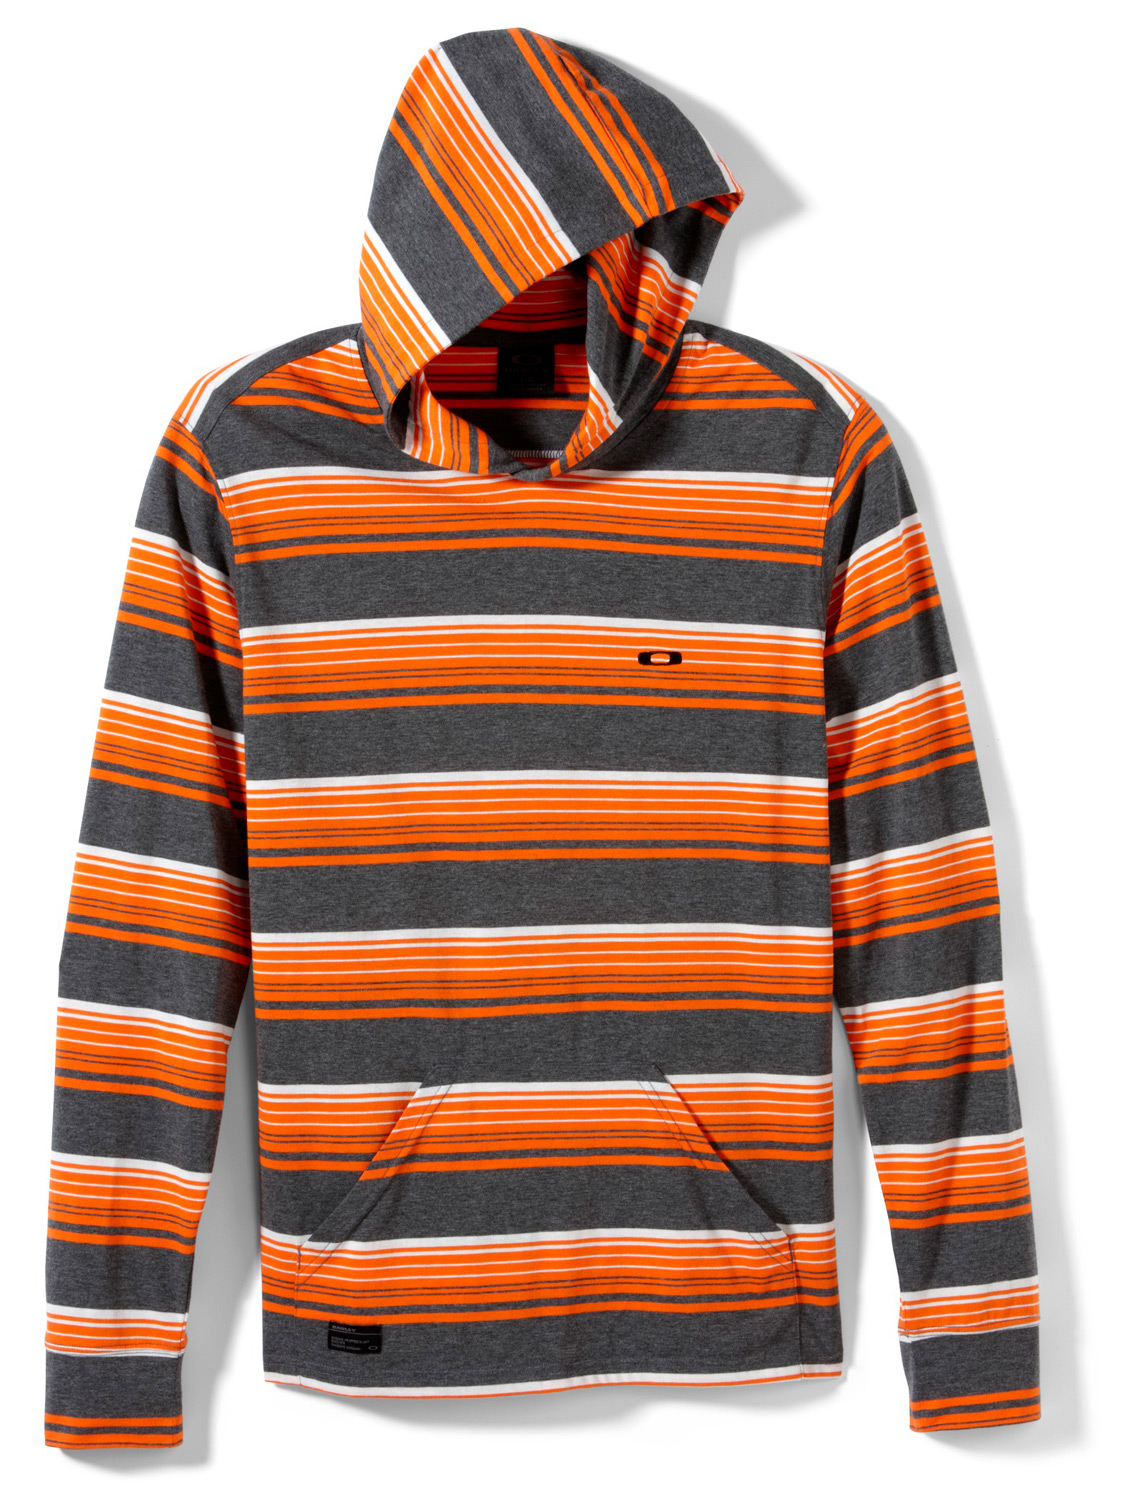 Lightweight yarn-dye striped pullover with marsupial pocket and front and back embroideries.Key Features of the Oakley Ray-Finned Hoodie: 60% cotton/40% polyester - $32.95